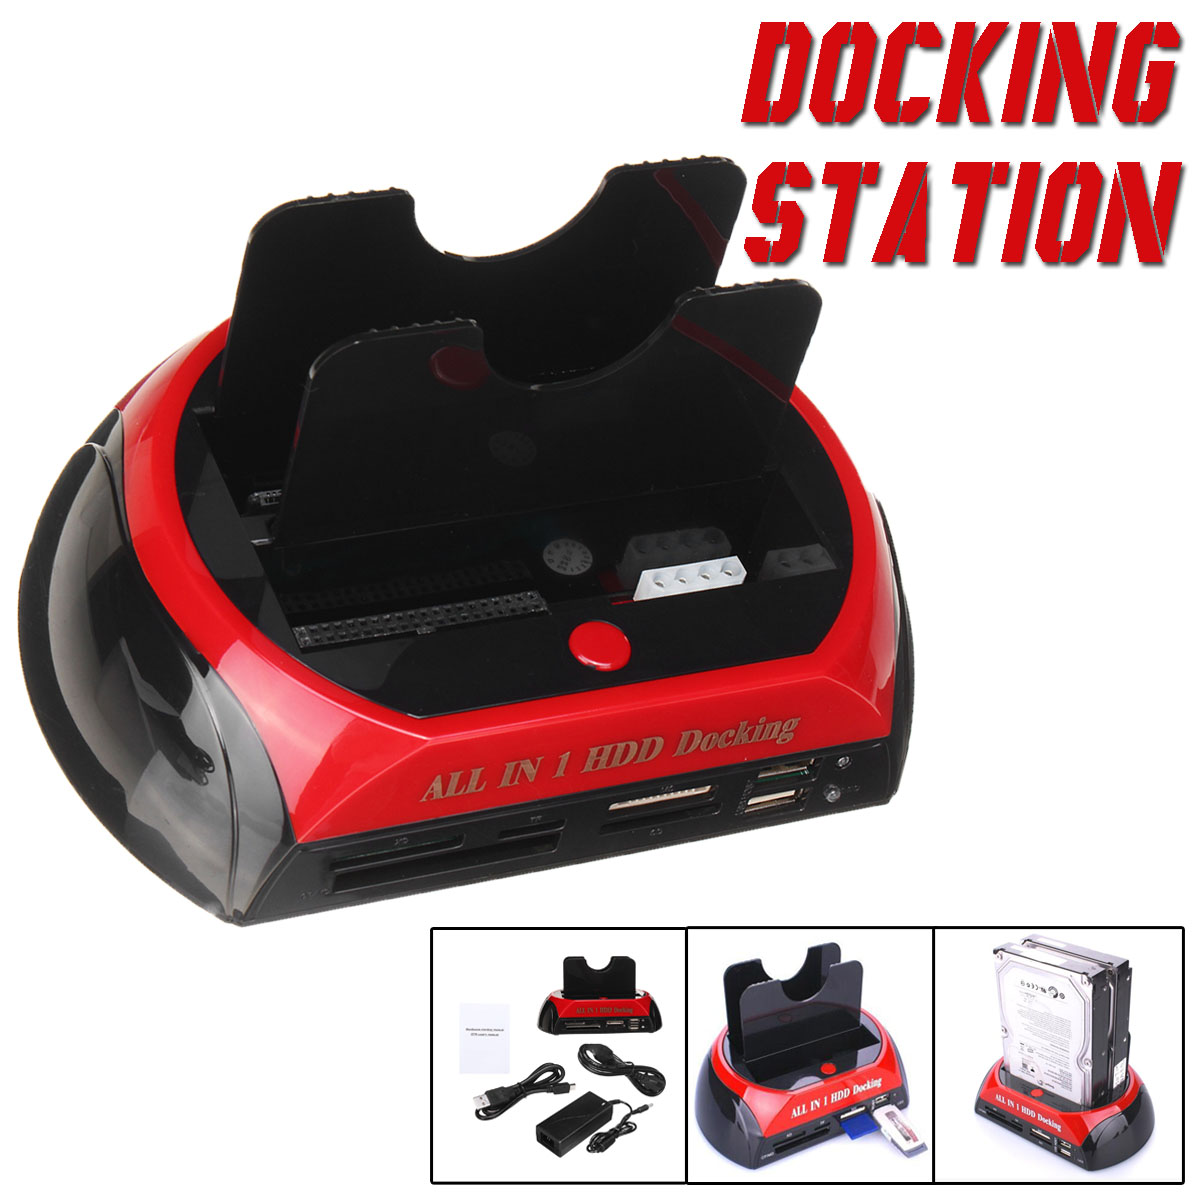 S SKYEE HDD Docking Station HDD Case Dual Slots 2.5 3.5 Reader USB 2.0 SATA IDE HDD Docking Station Black Red